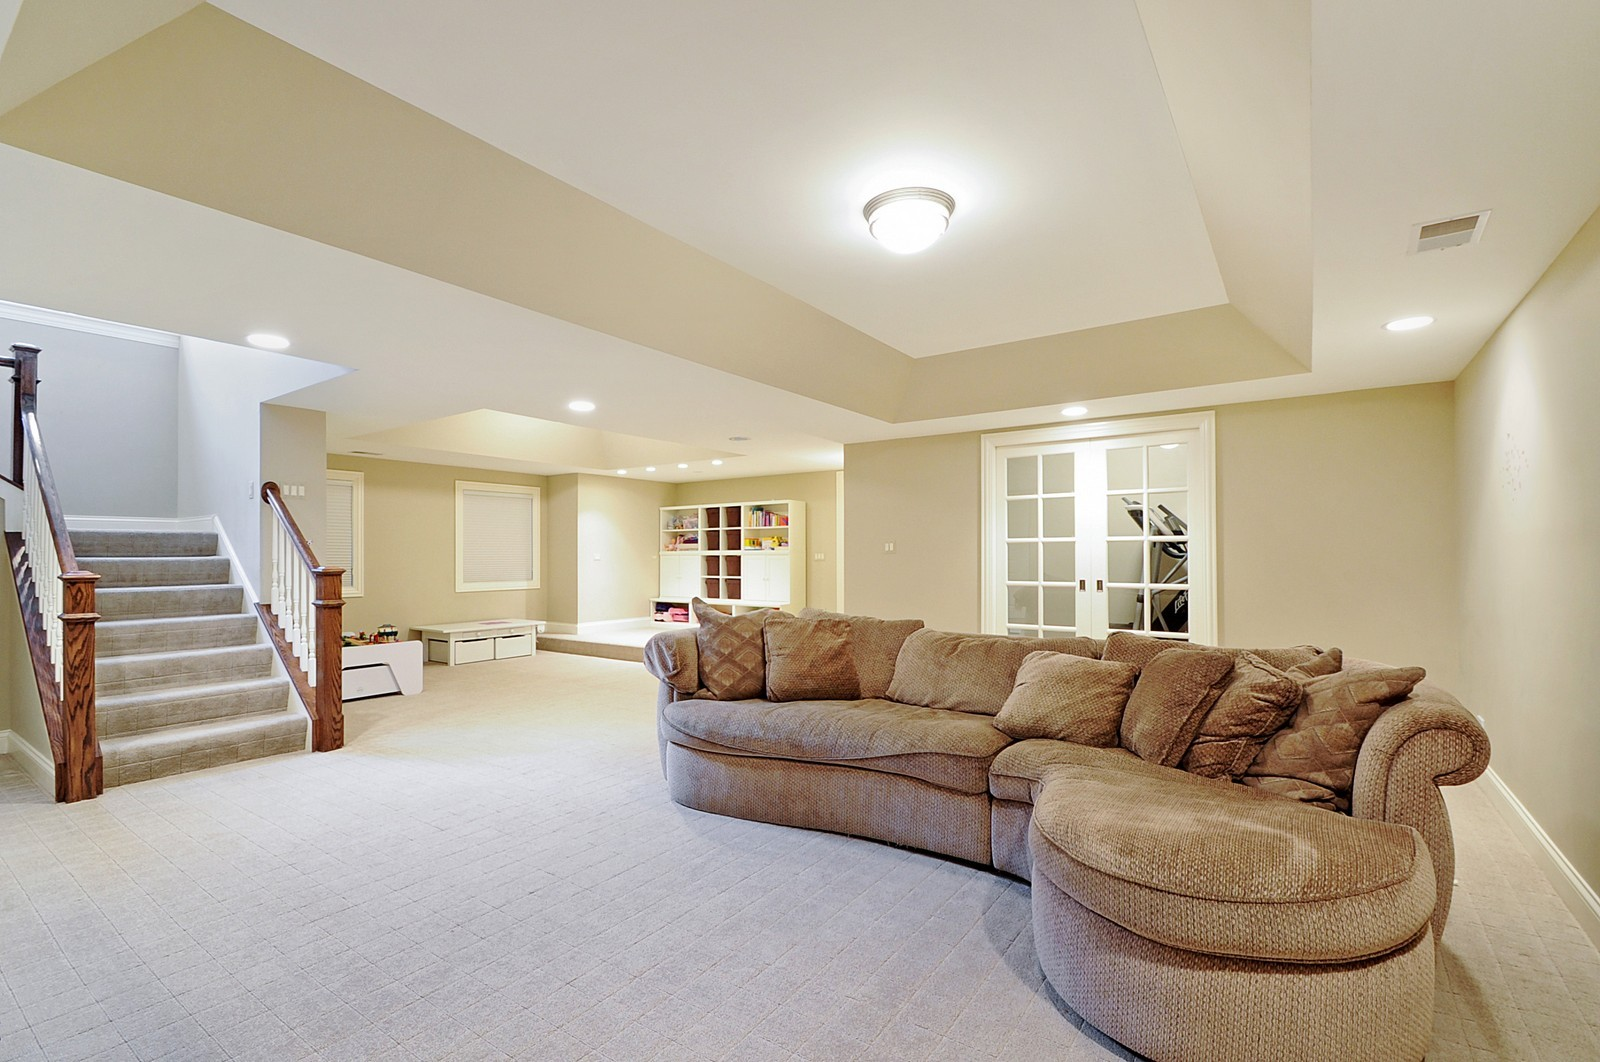 Real Estate Photography - 1789 Elmwood, Highland Park, IL, 60035 - Basement